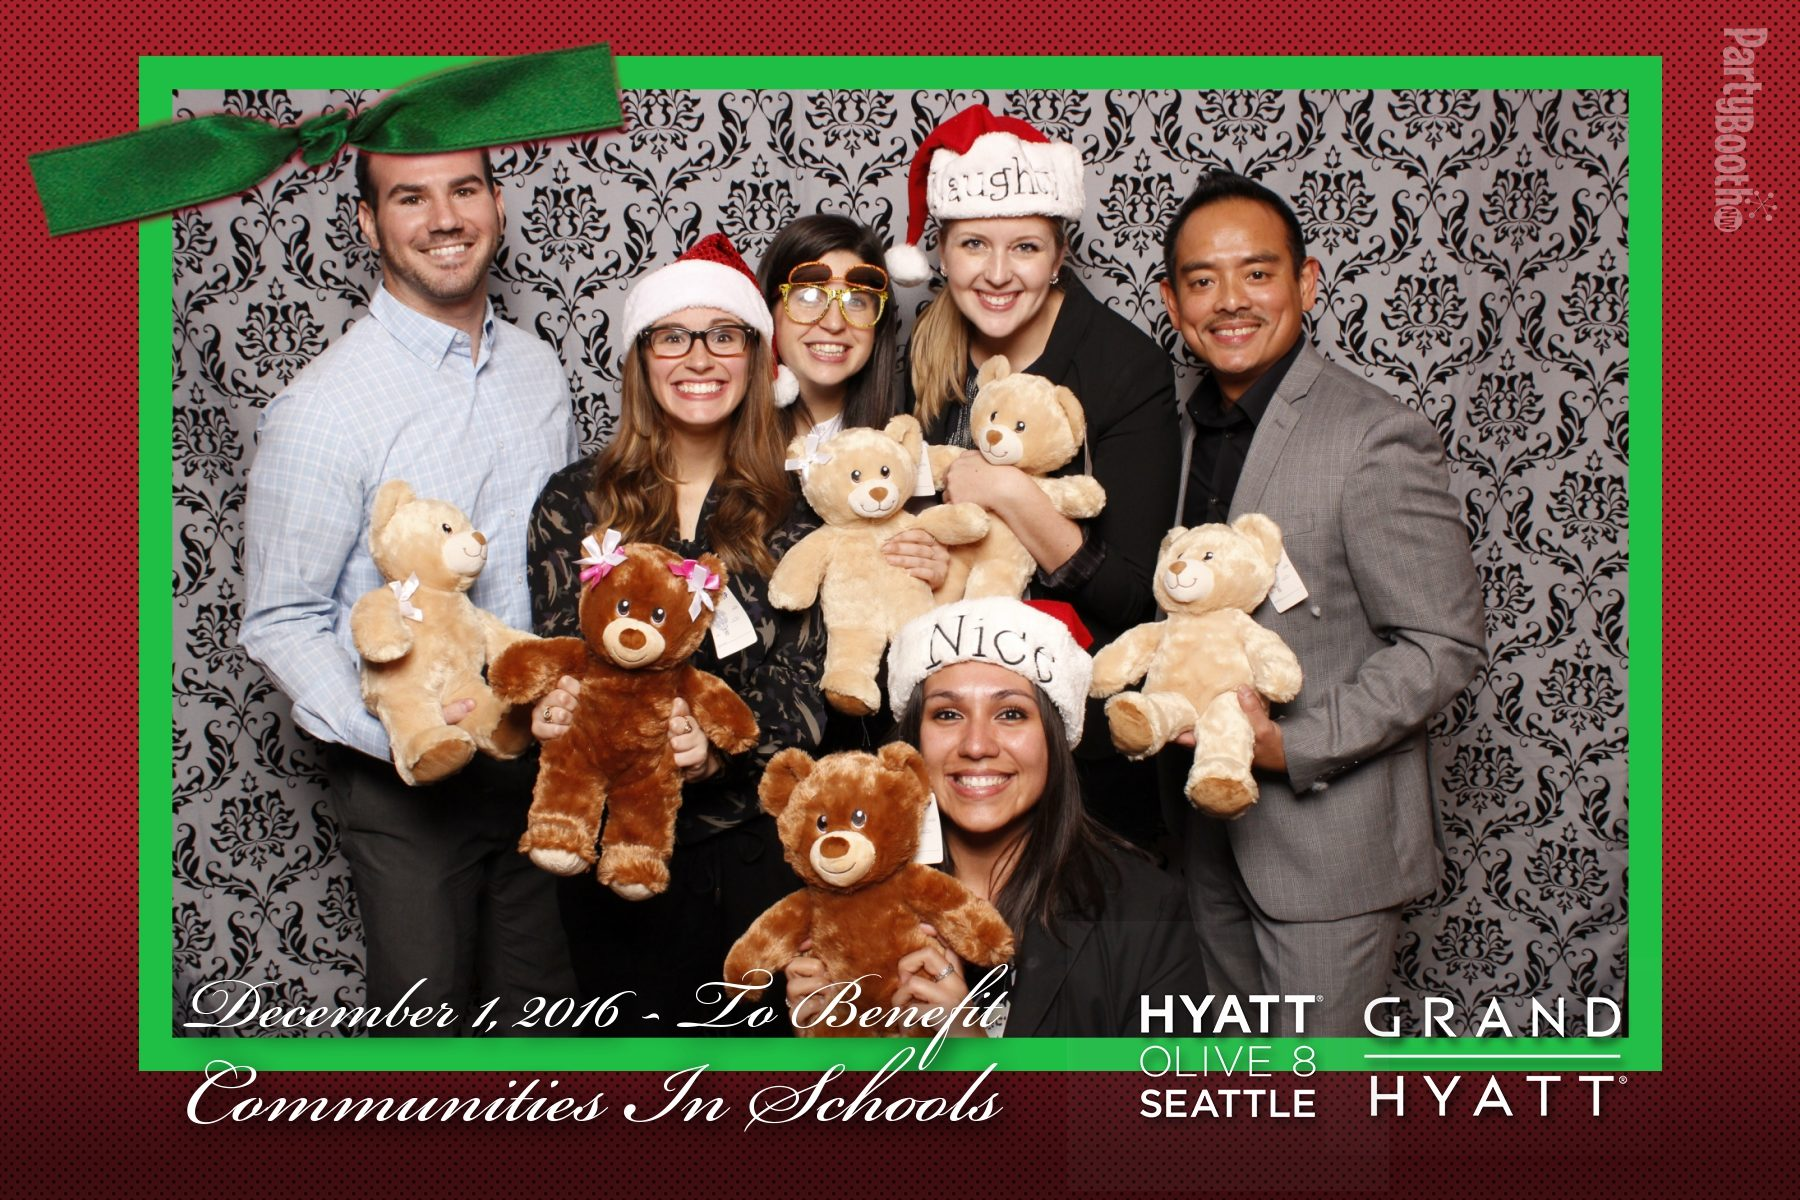 As part of their commitment to the community, The Grand Hyatt Seattle and Hyatt Olive 8, for the 4th year in a row, invited VIPs and special guests for a fun holiday party featuring Build-A-Bear Workshop to support Communities in Schools - the nation's leading dropout prevention organization. Guests were treated to great food, holiday tunes, and the opportunity to make their own furry friend from Build-A-Bear, while also raising money and donating gifts to this great community partner. Tonight We PartyBooth! Seattle Photo Booth ©2016 PartyBoothNW.com